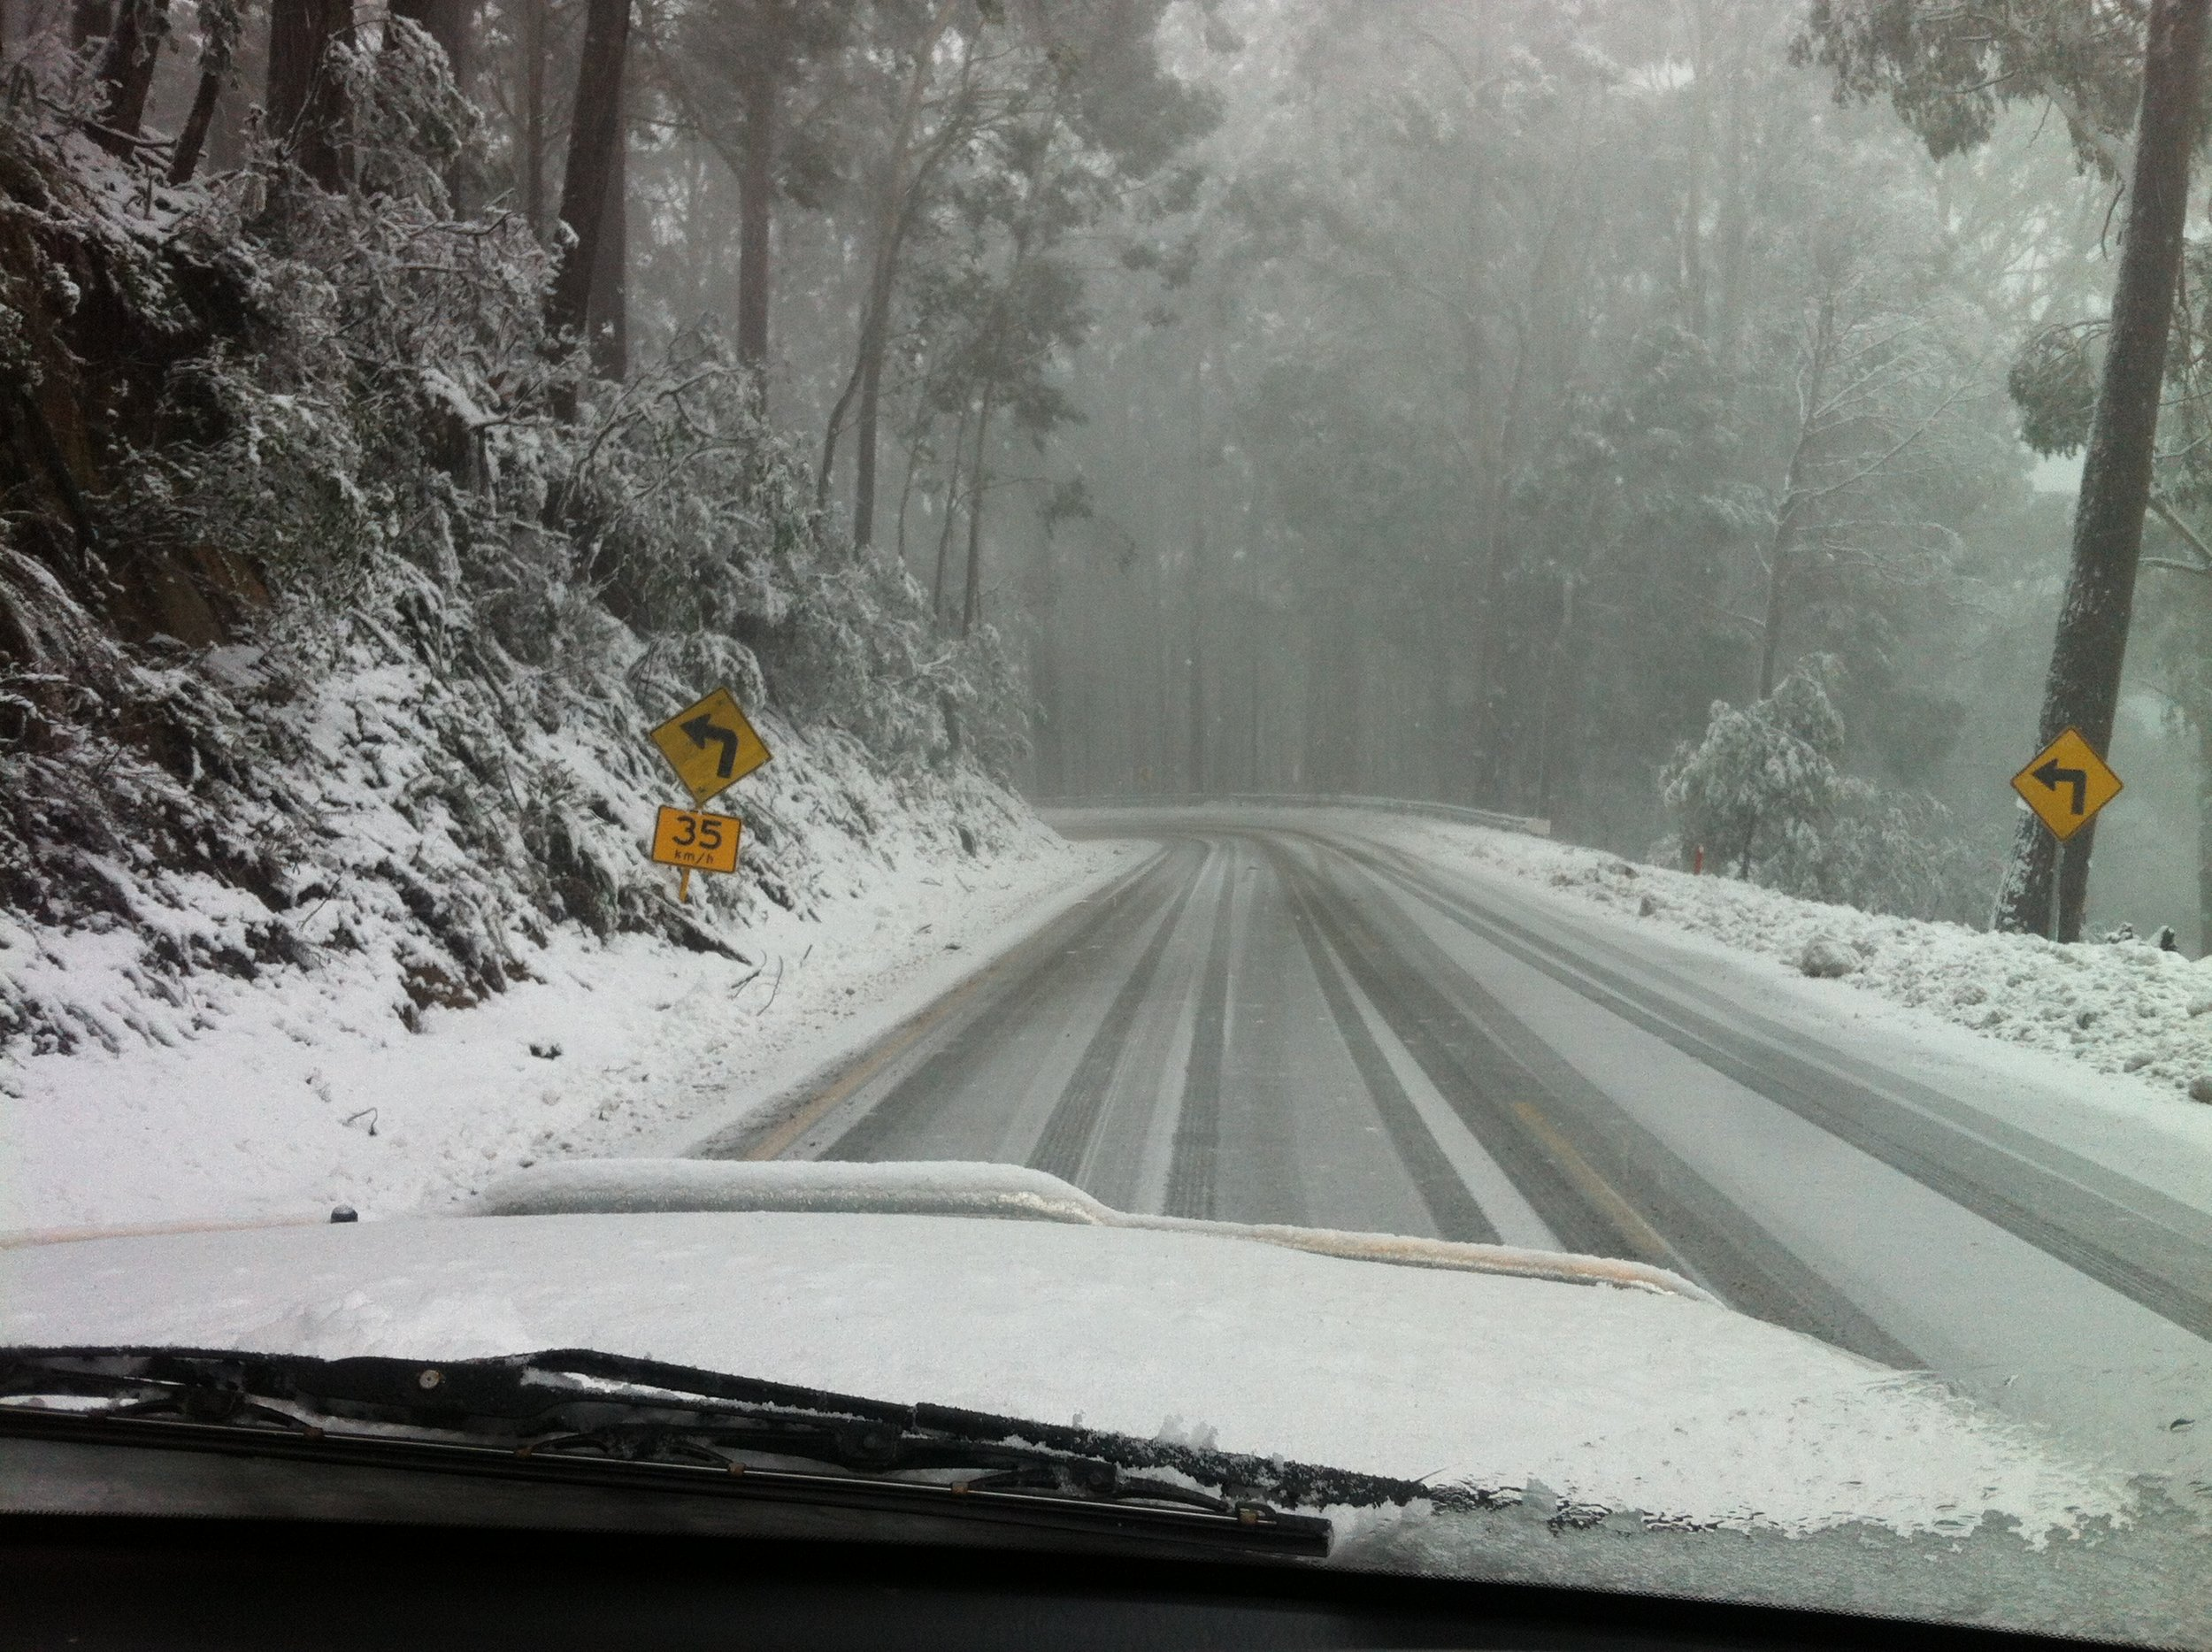 Driving a car... - Make sure you know all you need to know about driving in the Alpine National Park and on THE snowy and icy mountain road.